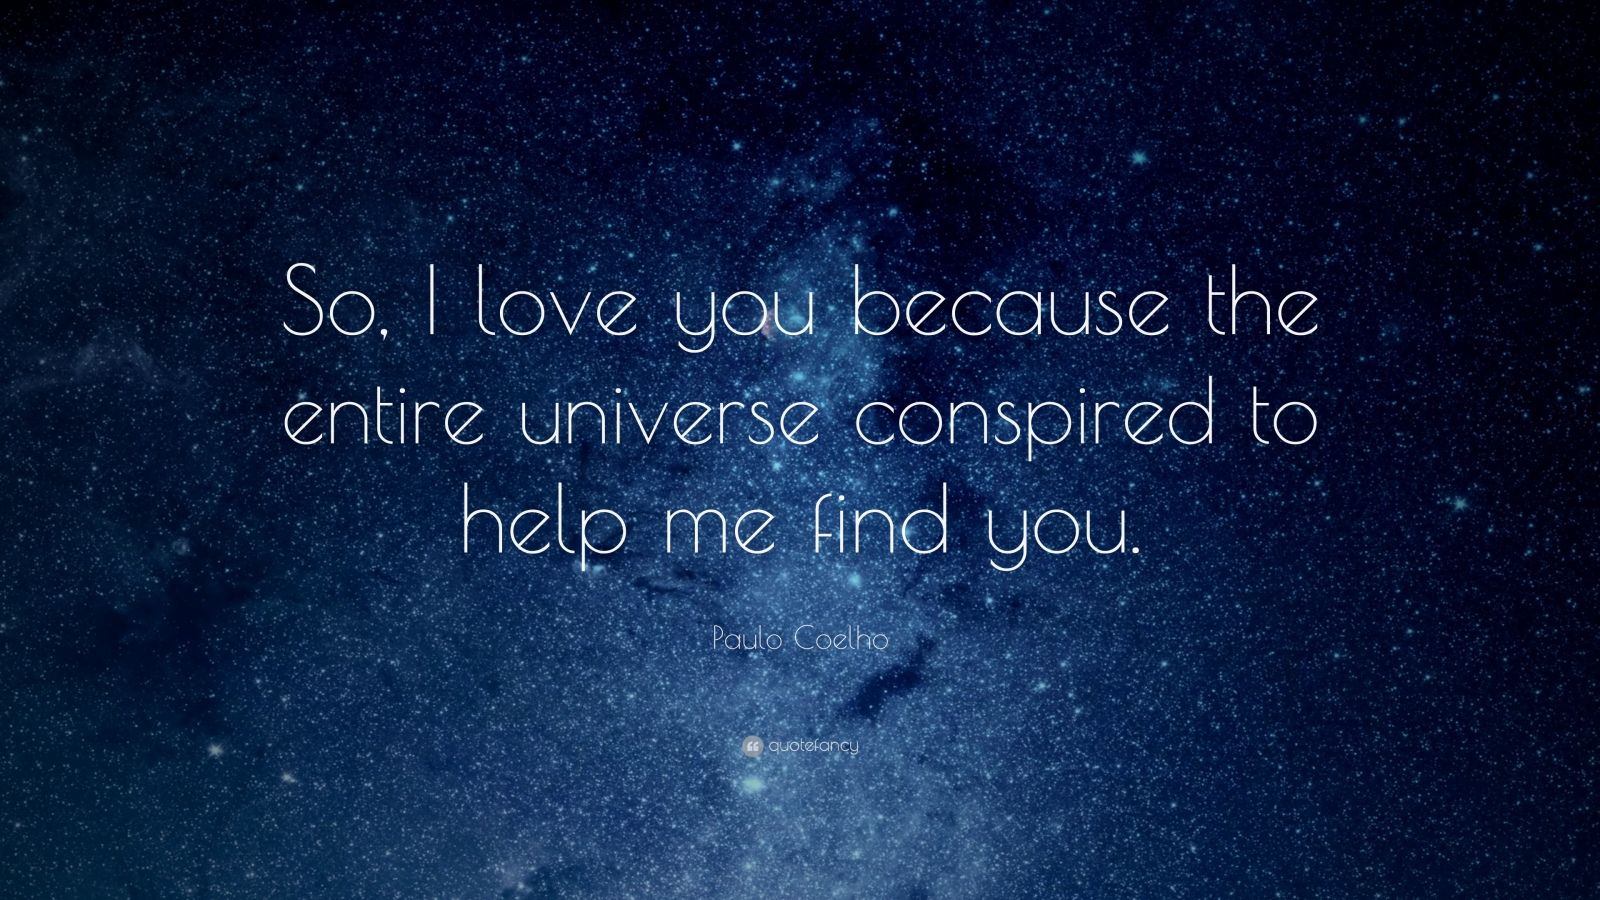 Love Quotes: U201cSo, I Love You Because The Entire Universe Conspired To Help